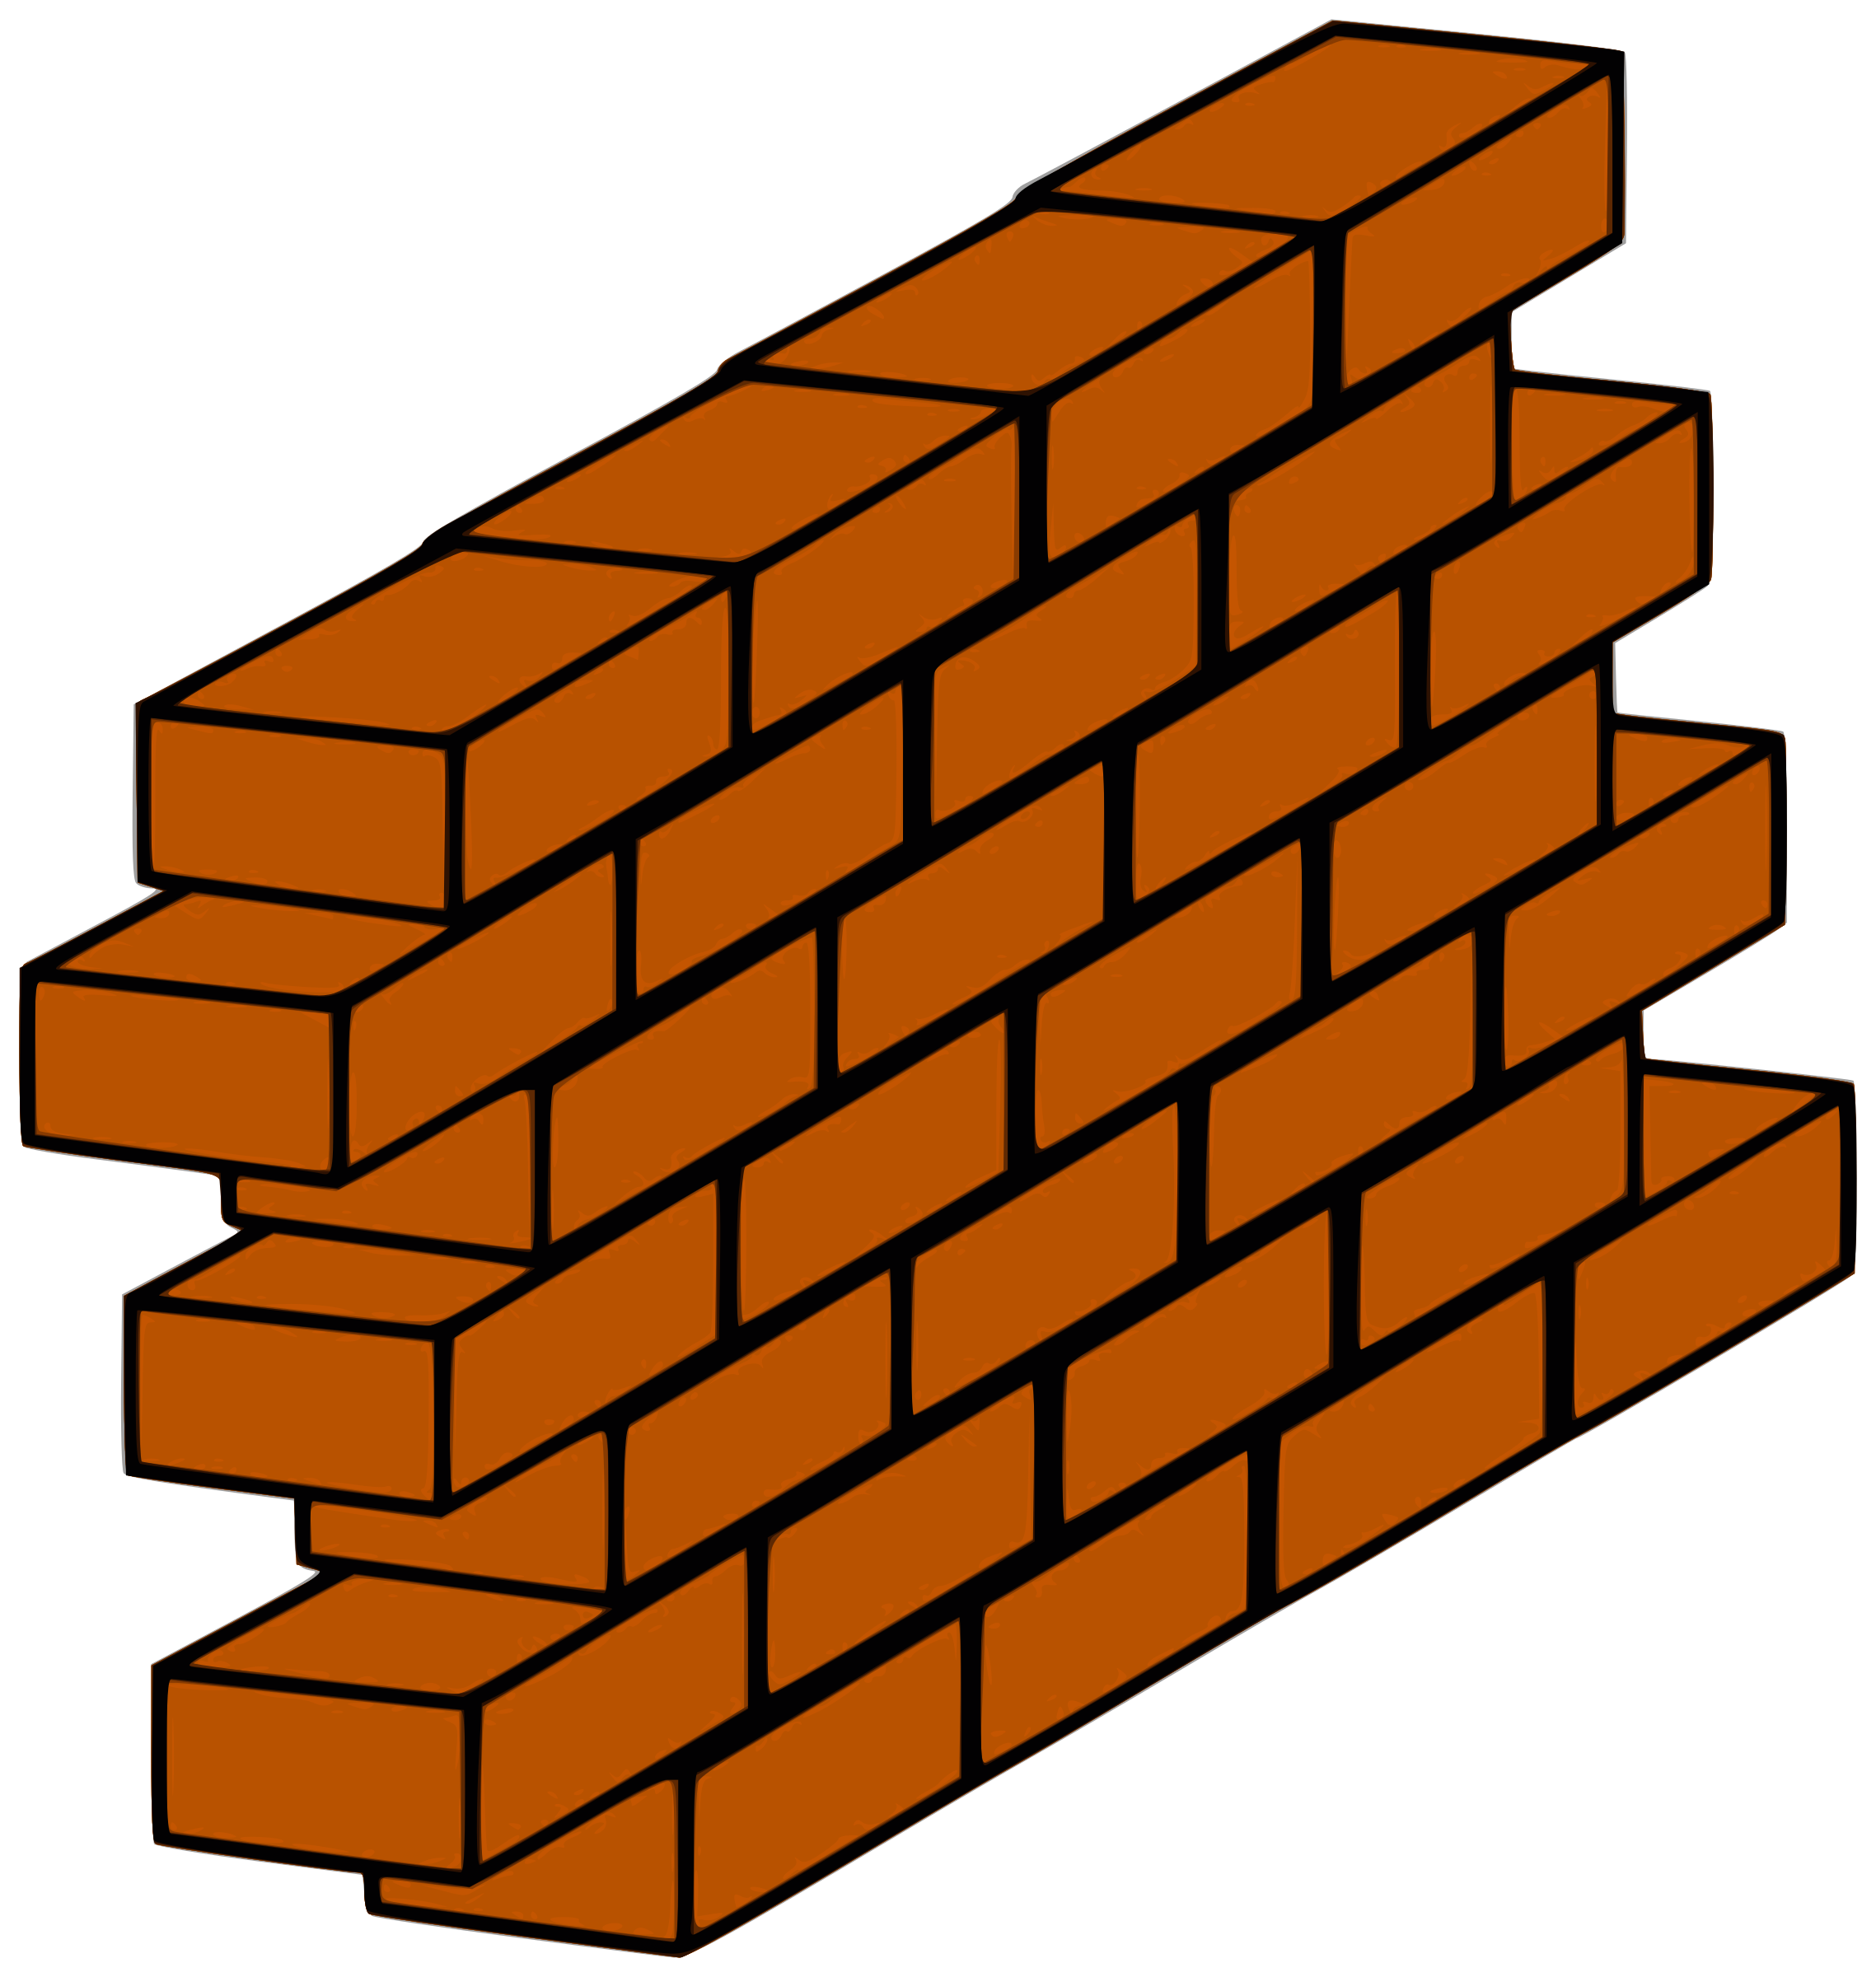 Wall clipart established. Red brick big image